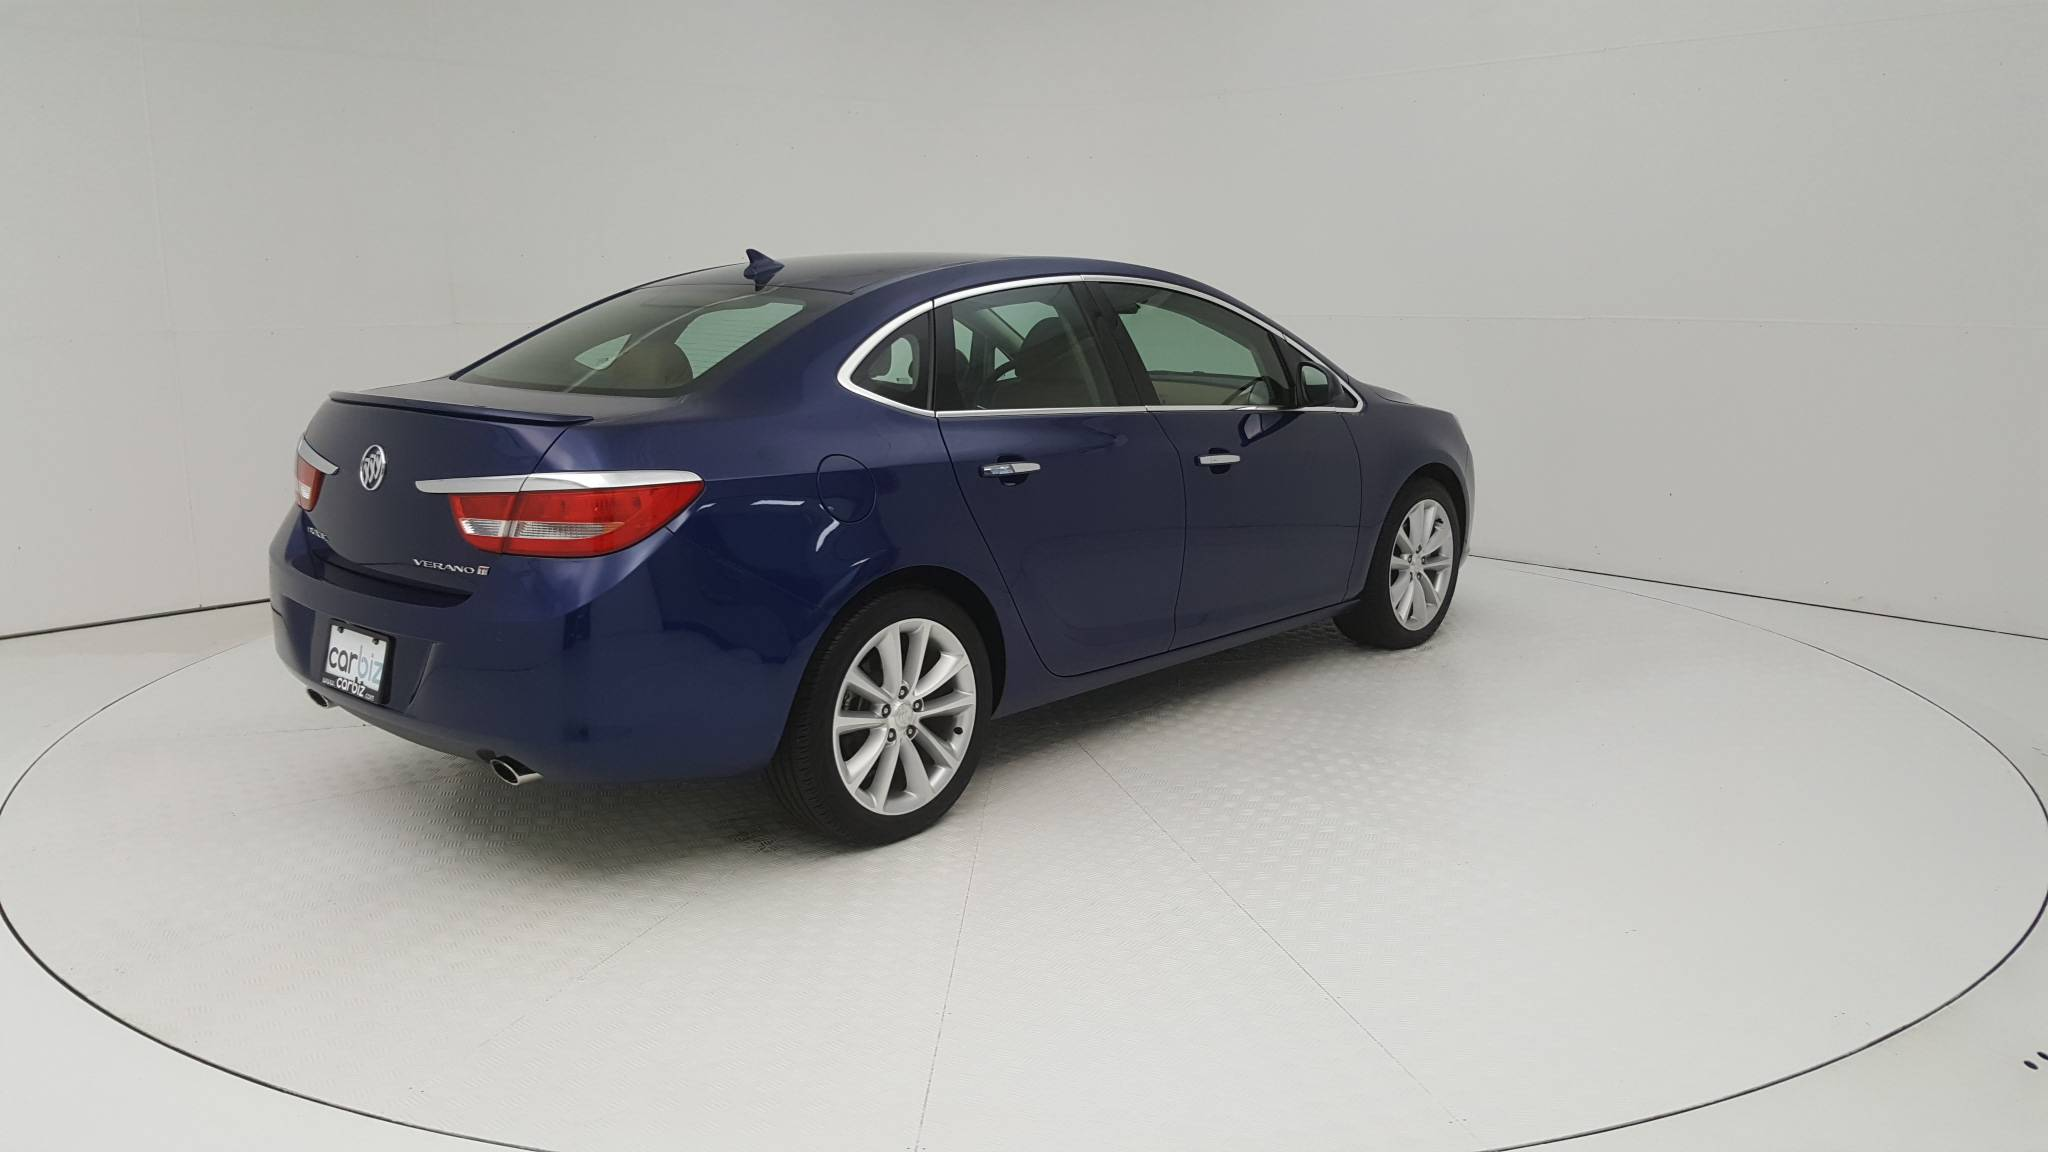 Pre Owned 2013 Buick Verano Premium Group 4dr Car in Baltimore